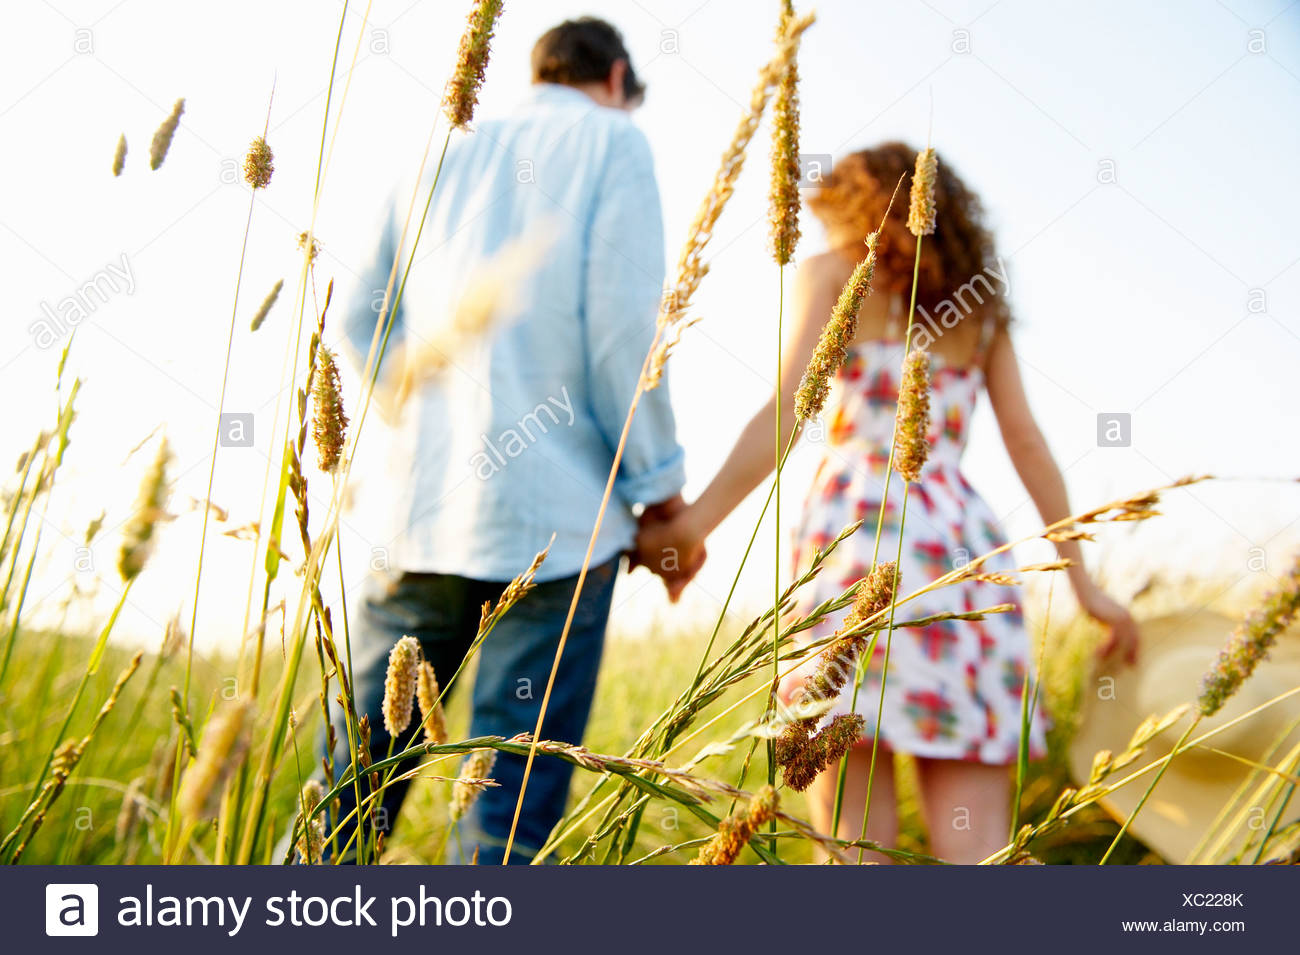 Couple holding hands in a wheat field - Stock Image